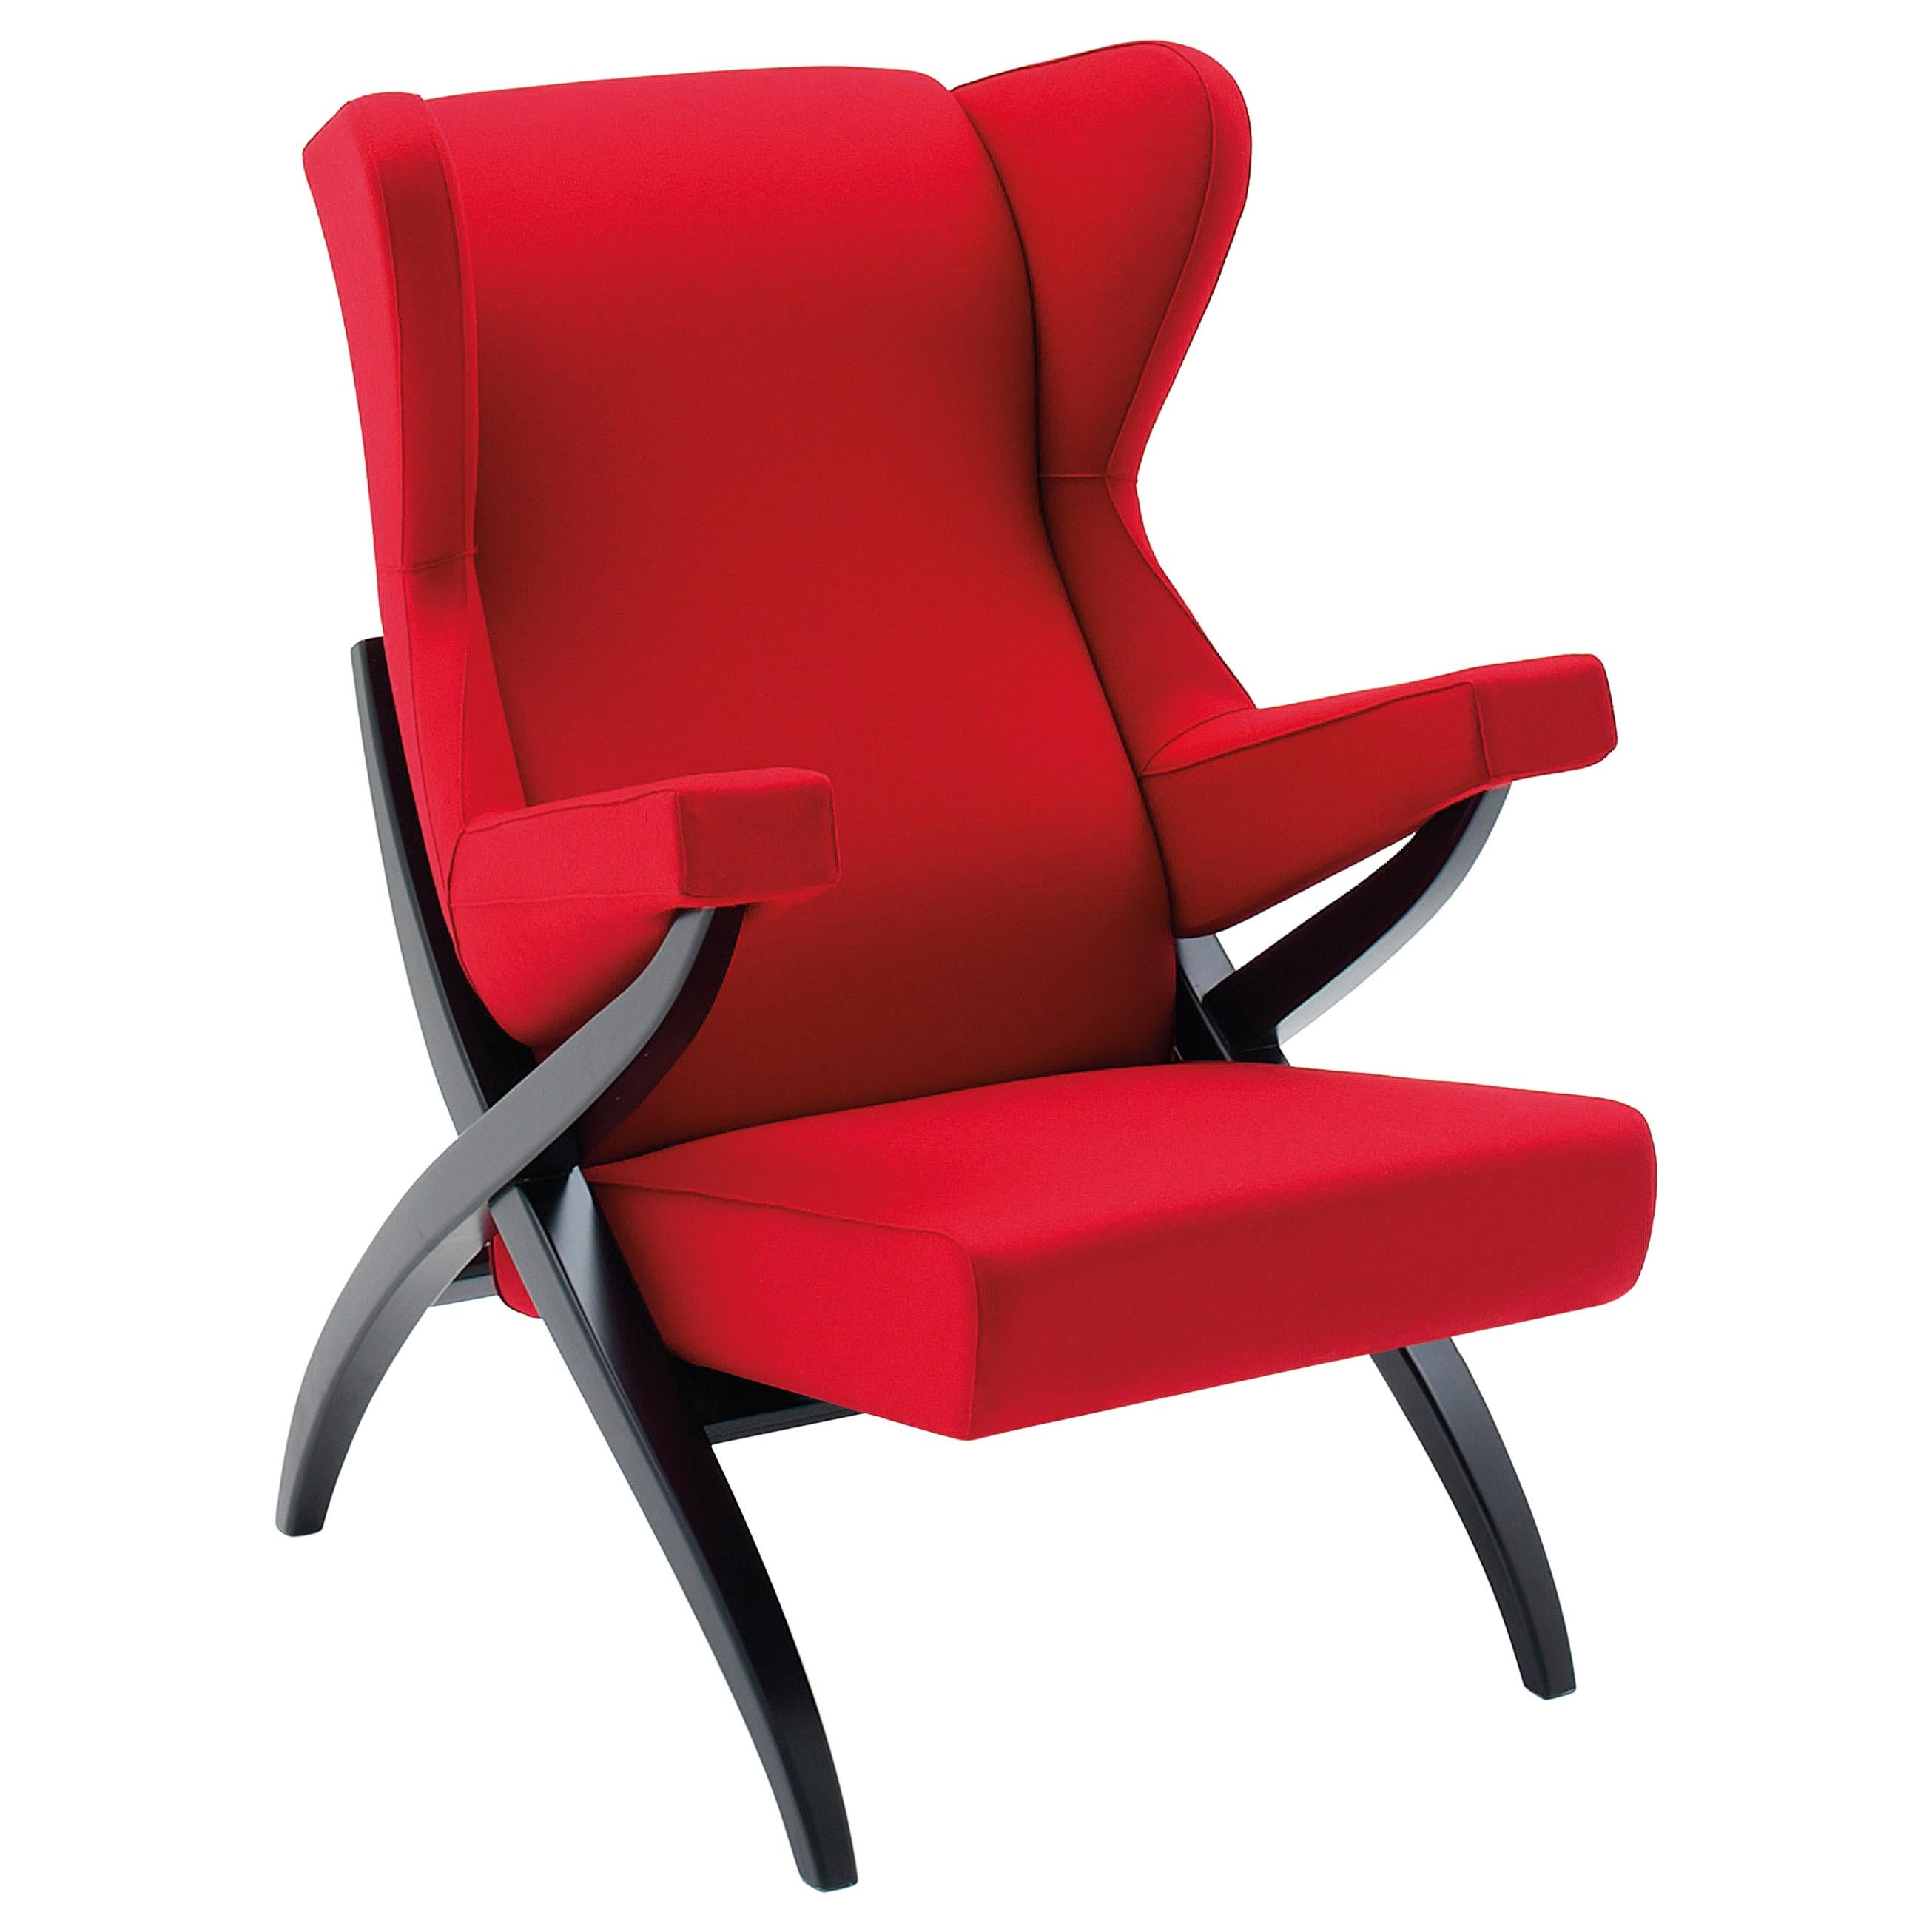 Arflex Fiorenza Armchair in Steelcut Red Fabric and Black Frame by Franco Albini